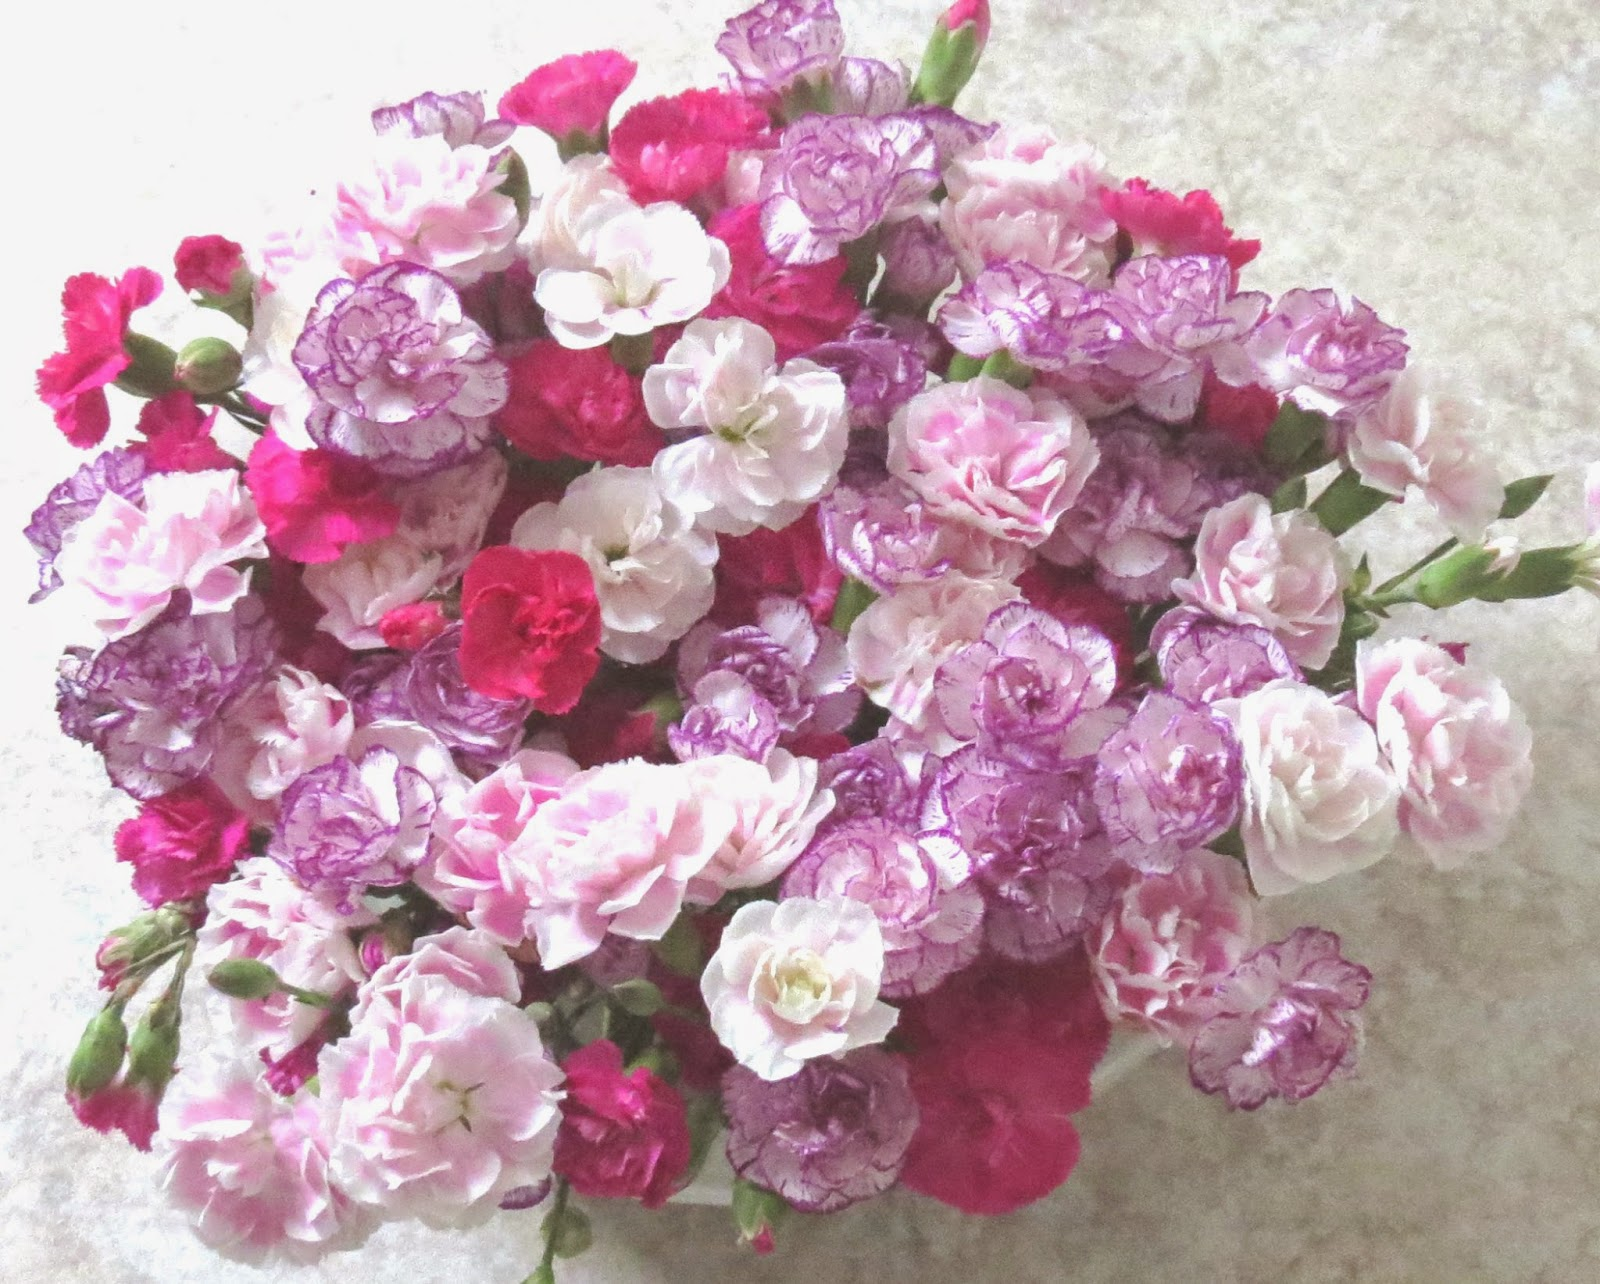 Ashleigh lawrence rye how to display carnations diy rose bowl if youd like advice on how to make your cut flowers last longer at home or you want some ideas for alternatives to generic cut flower food izmirmasajfo